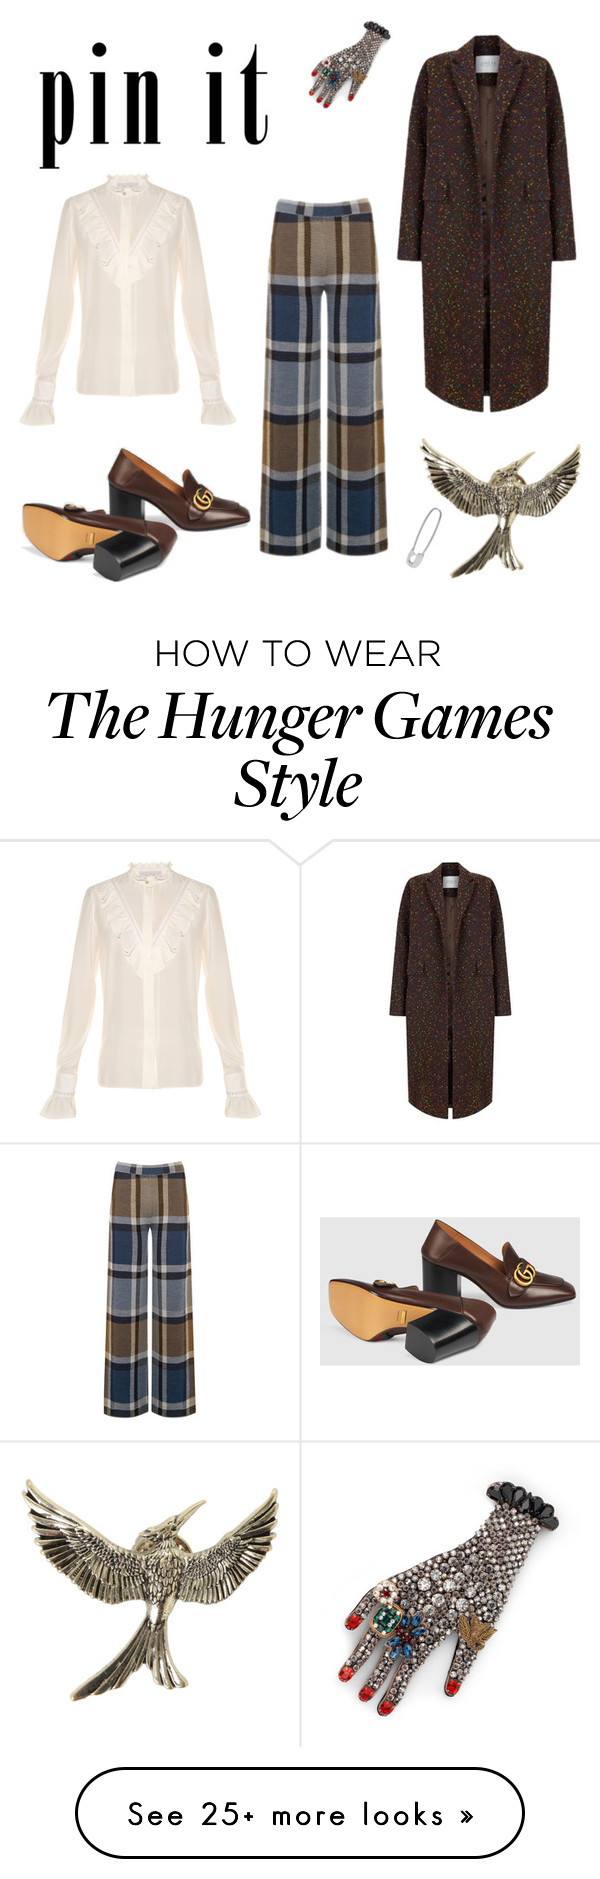 """À la mode workplace attire with unique and edgy pins."" by iszylewis on Polyvore featuring Warehouse, STELLA McCARTNEY, Gucci, The 2nd Skin Co. and Lauren Klassen"